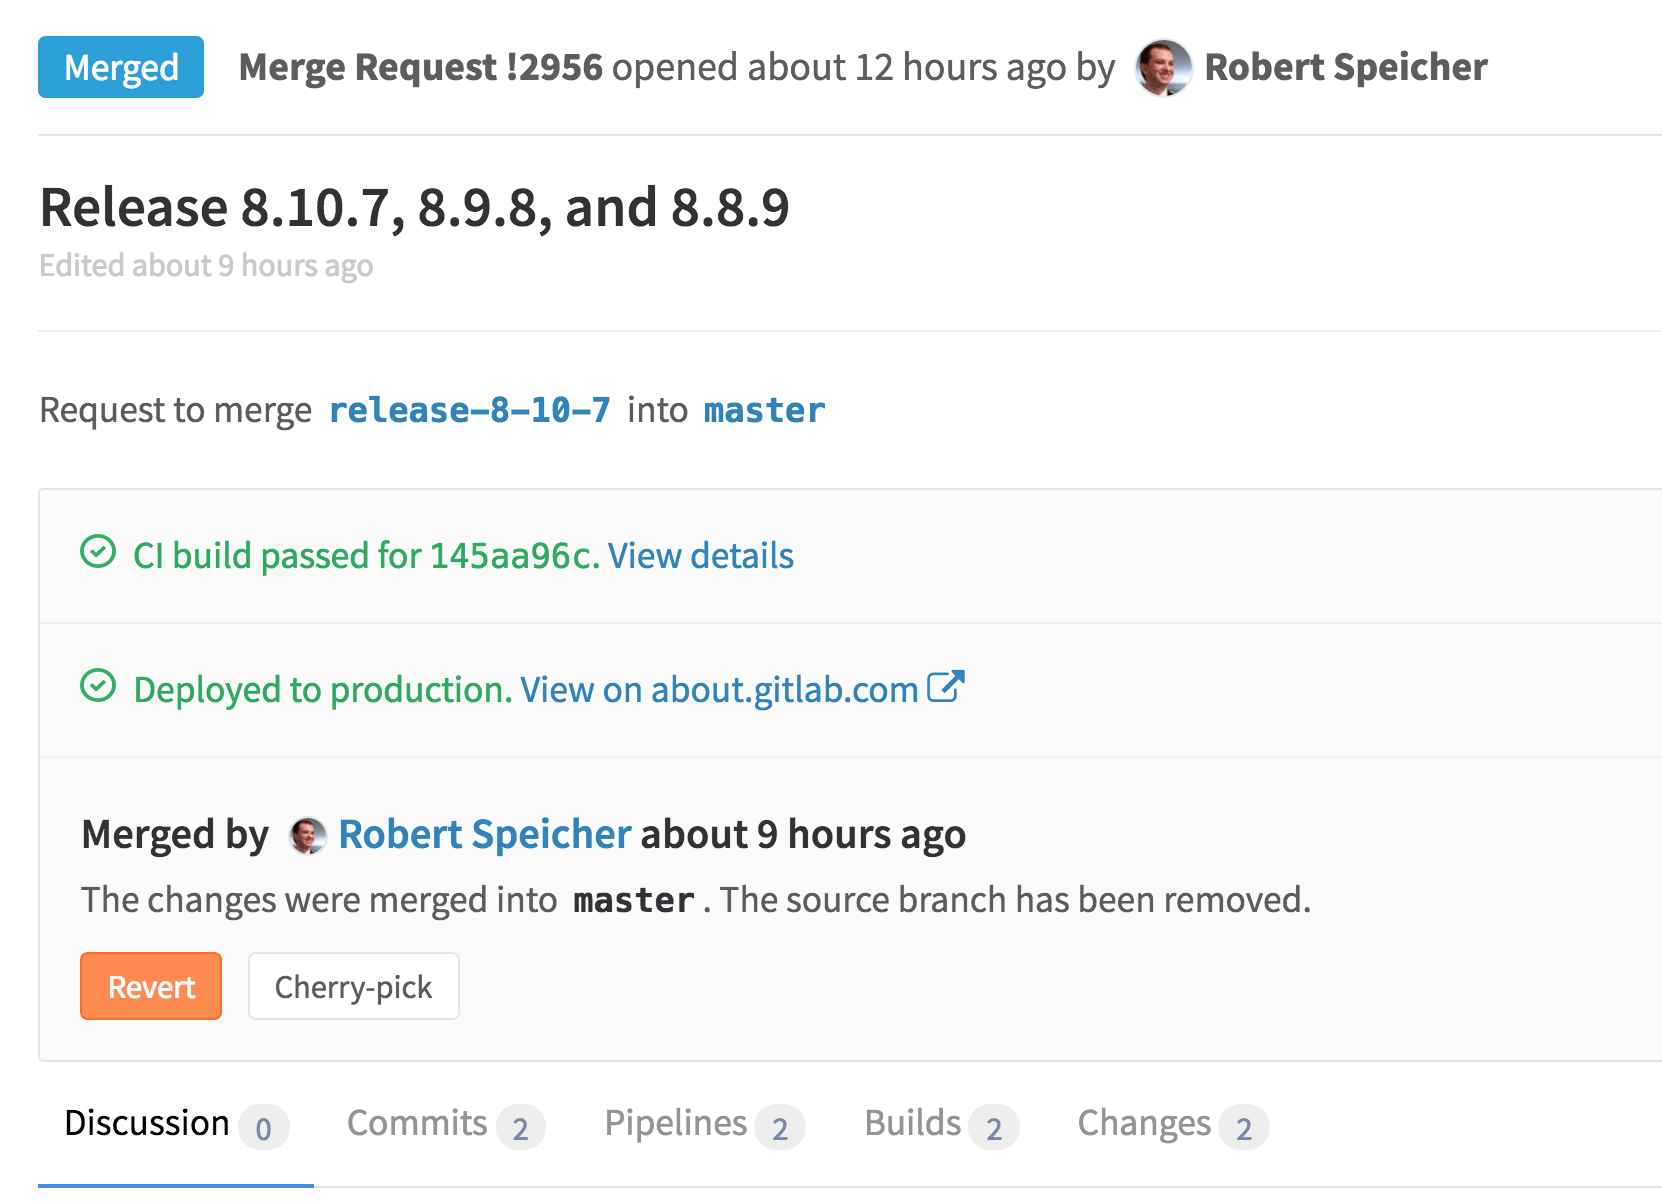 See deploy status in merge request in GitLab 8.11